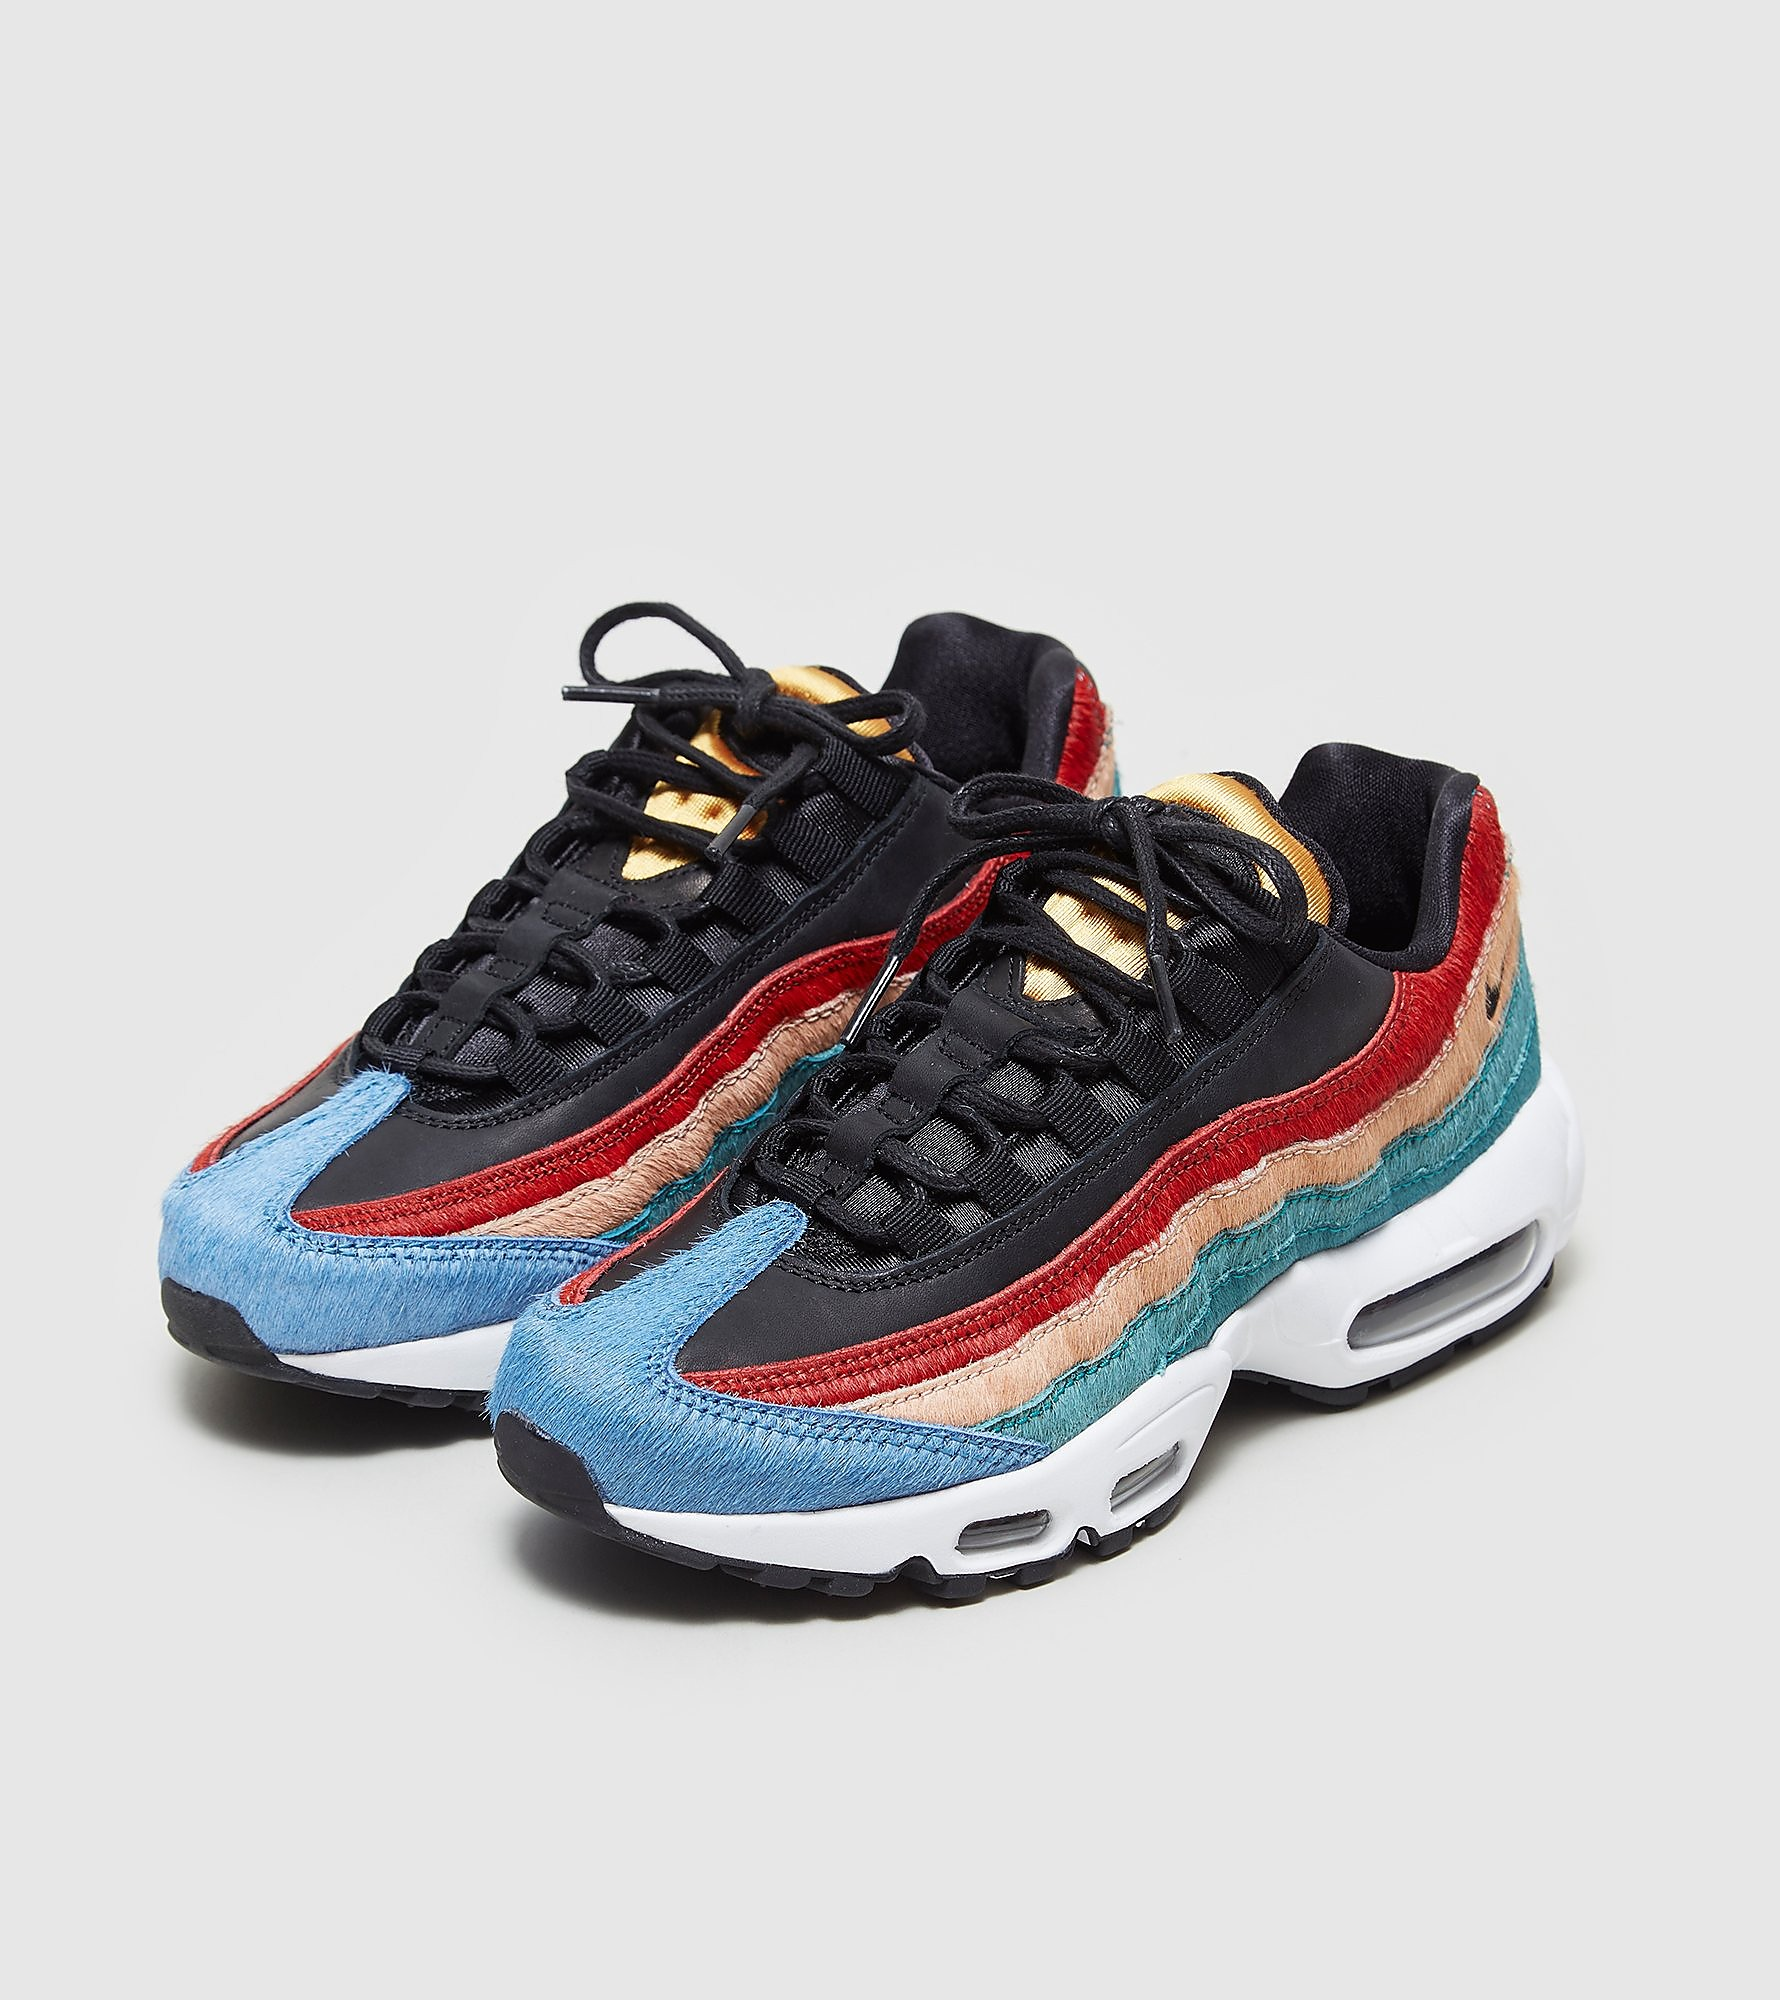 Nike Air Max 95 Premium 'Multi-Colour' Women's